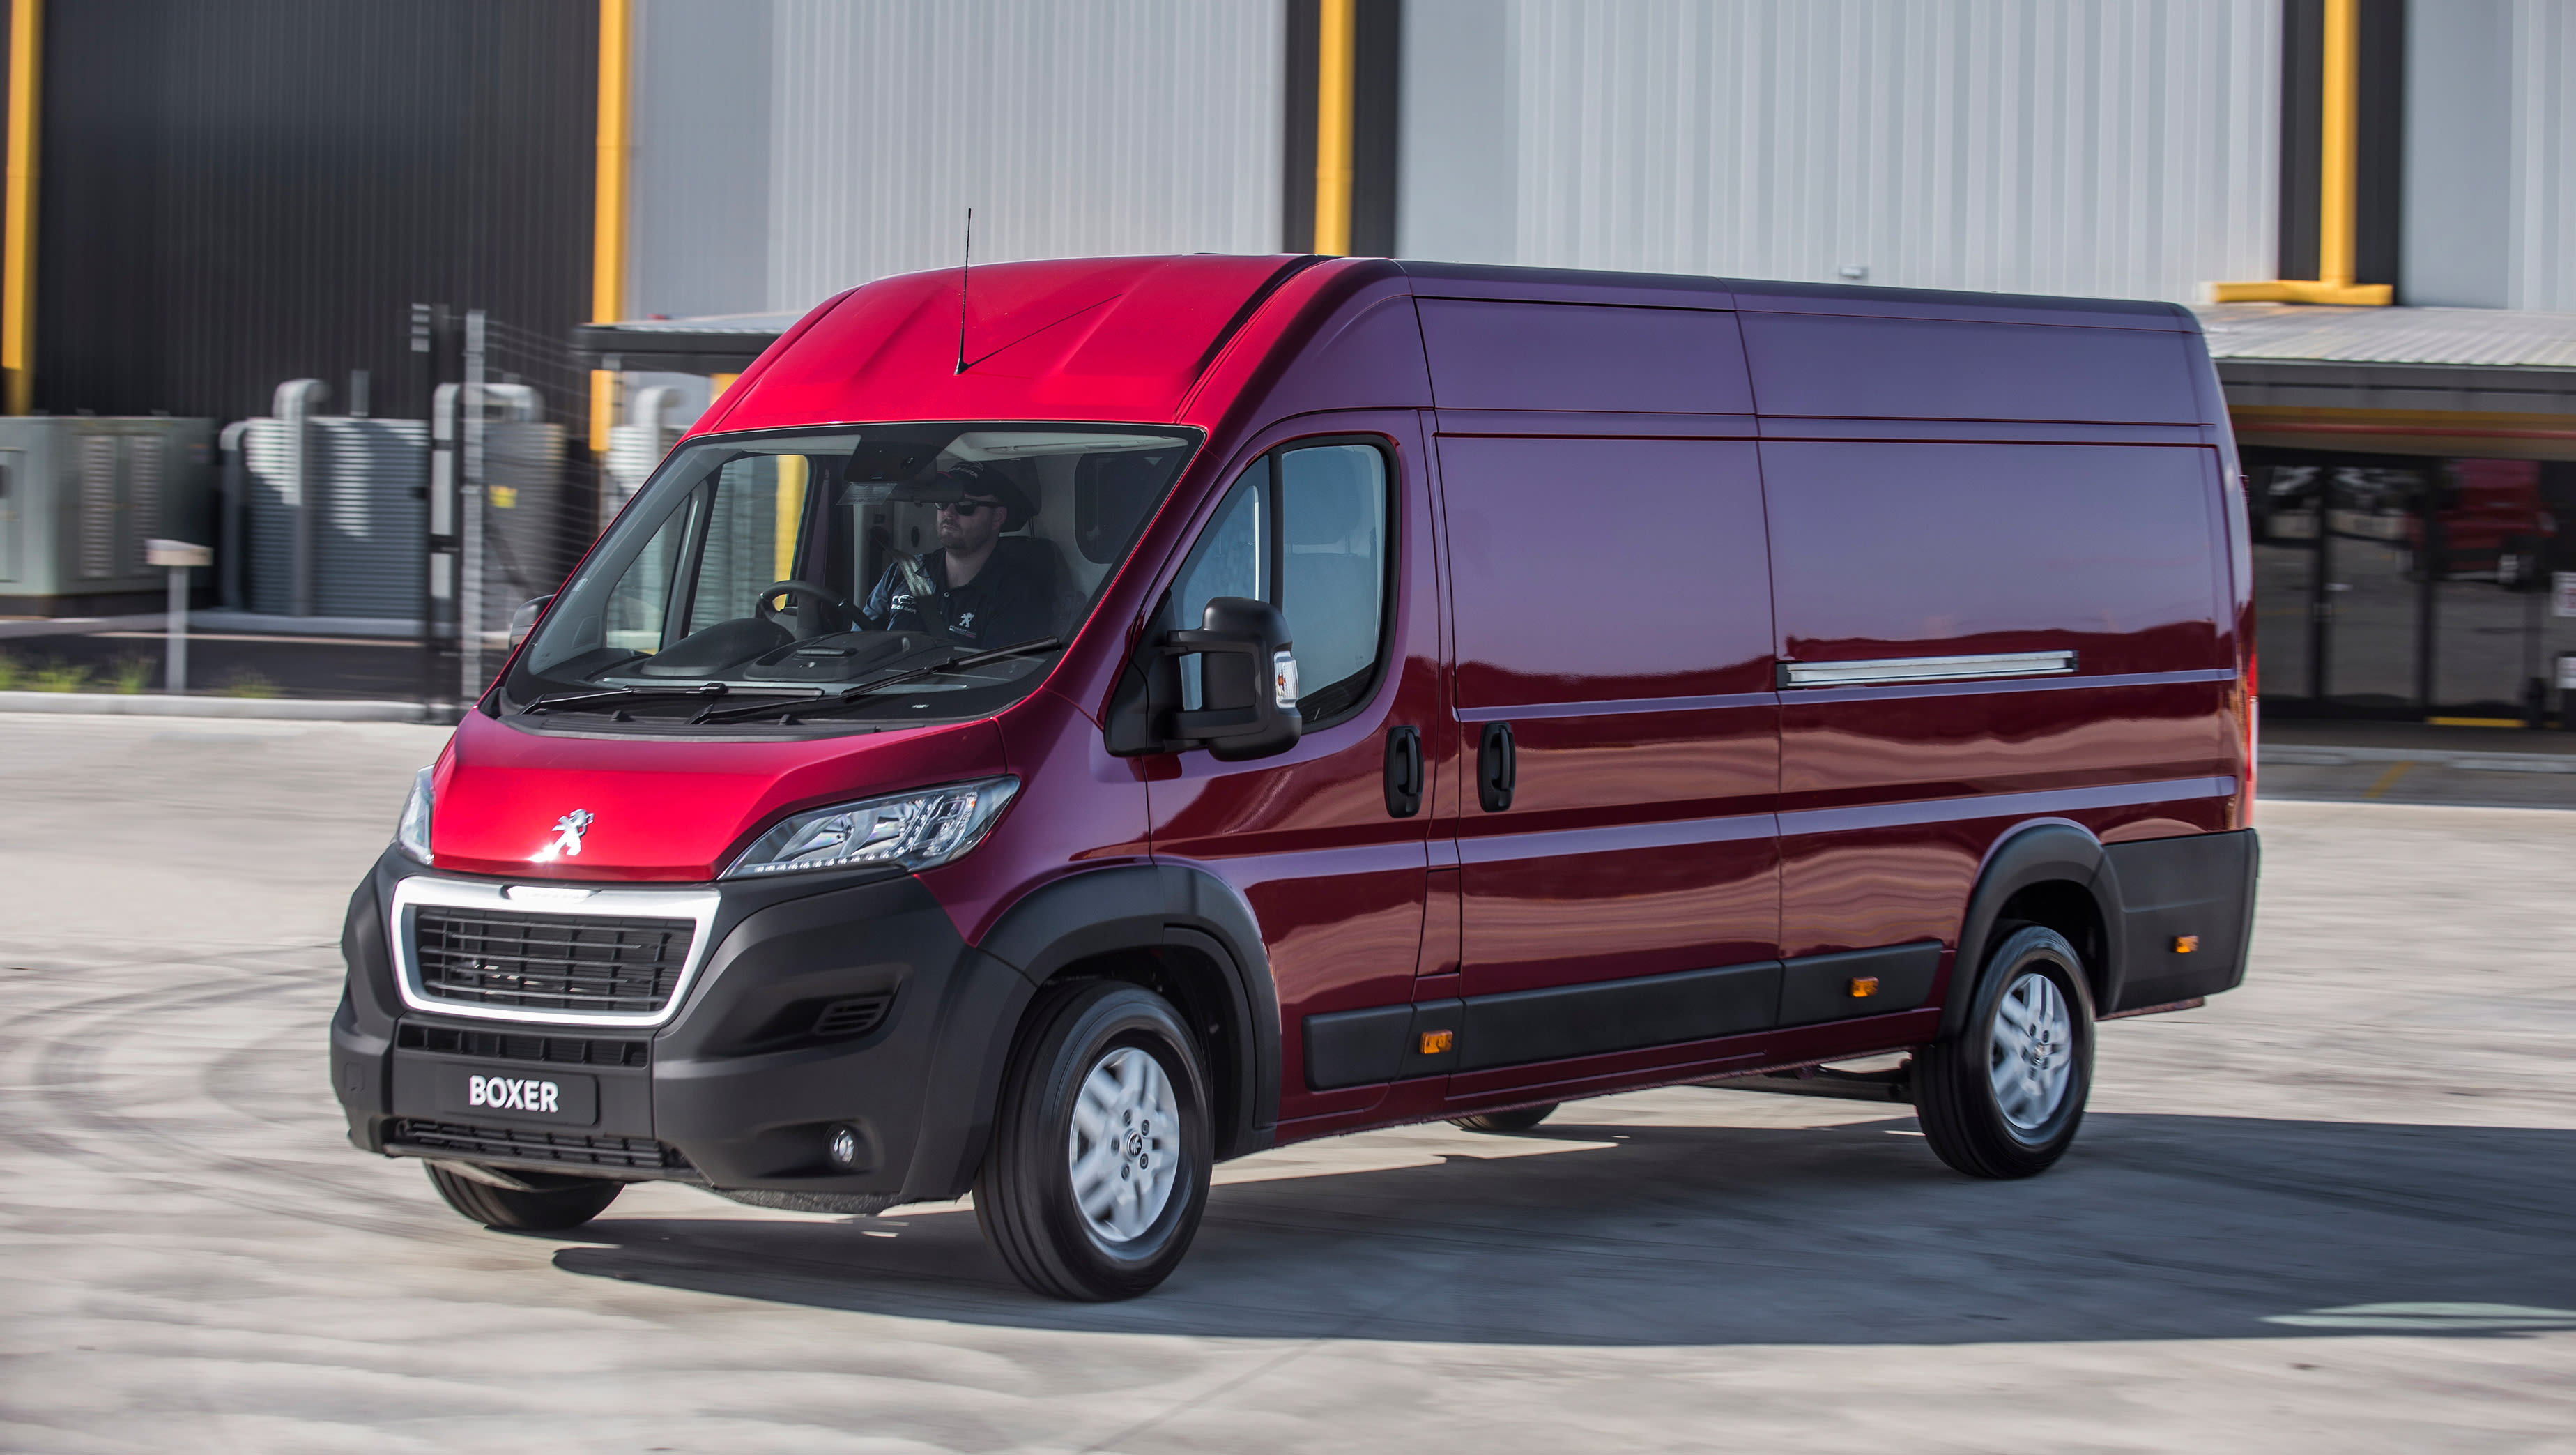 Peugeot Boxer 2020 pricing and spec confirmed: Large van ...